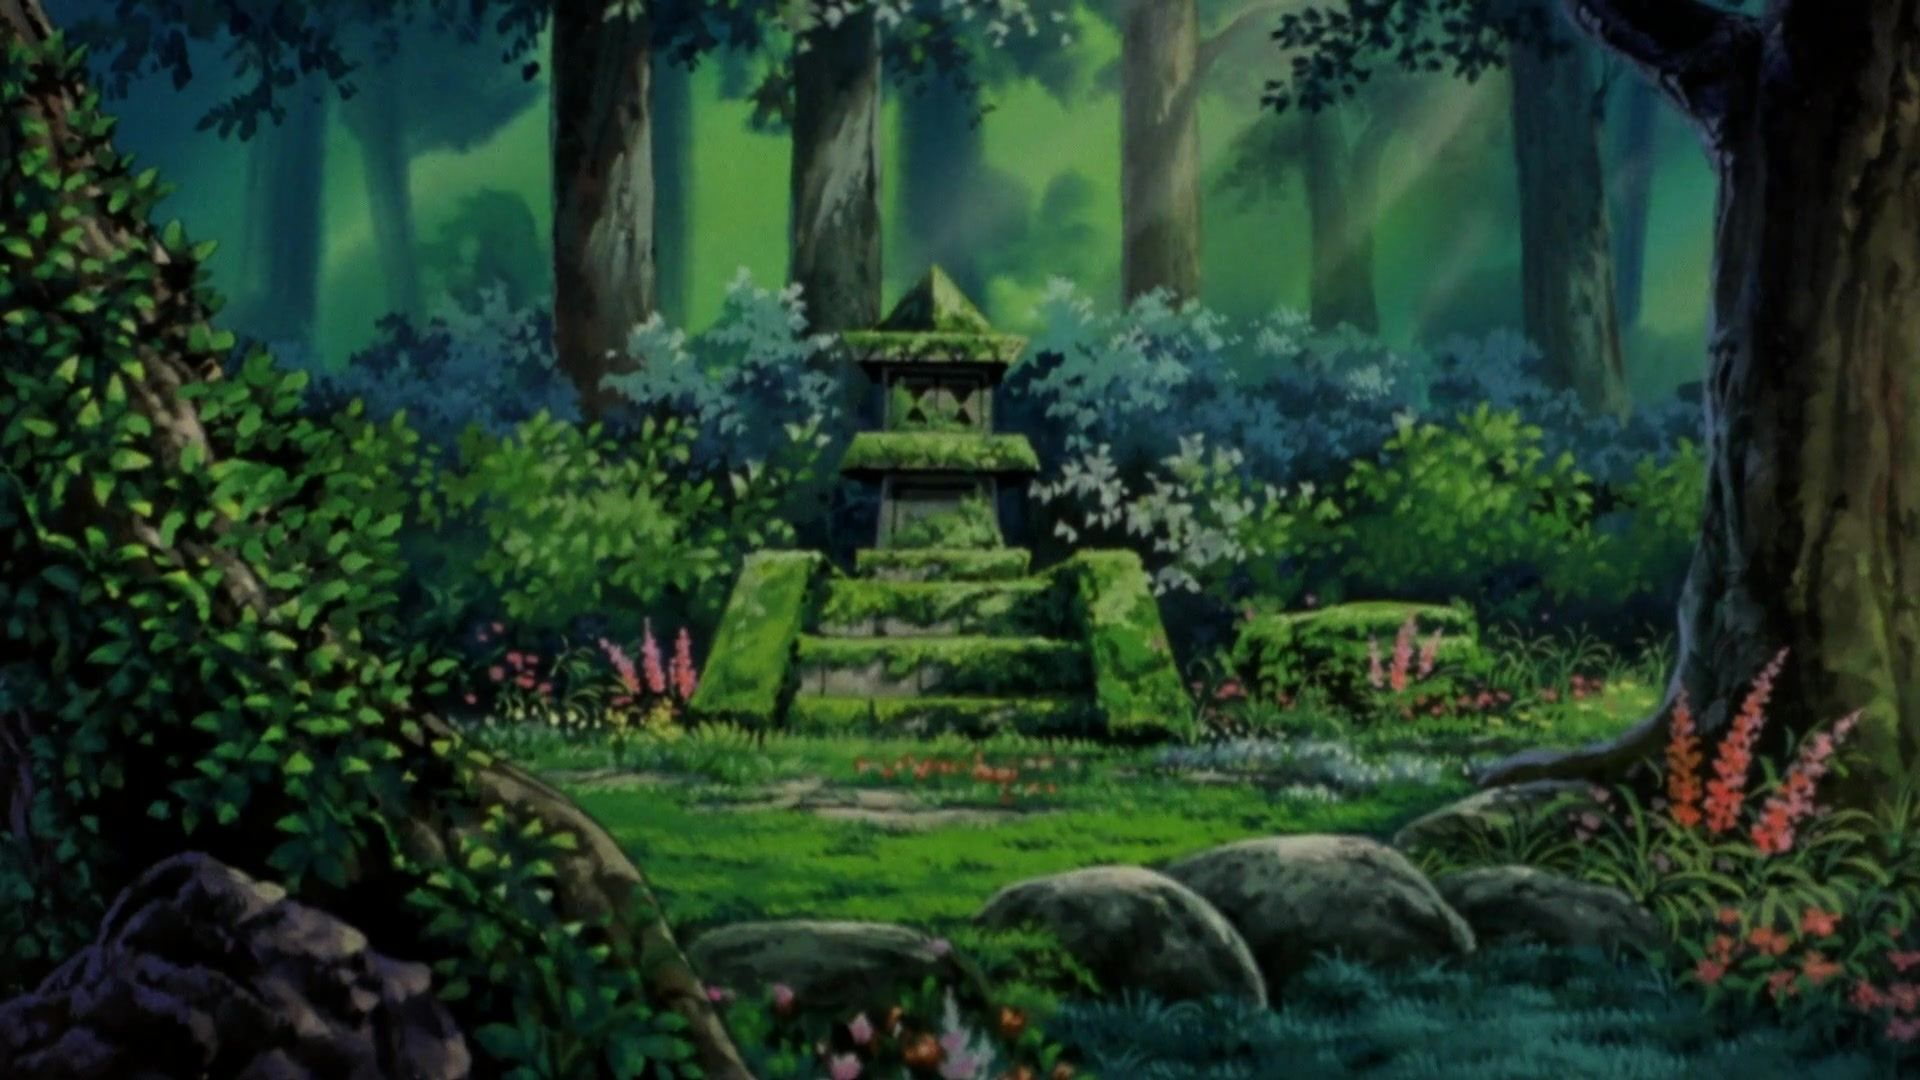 Screencap And Image For Pokemon 4ever Celebi Voice Of The Forest Fancaps Net Pokemon Inspirational Backgrounds Forest Background